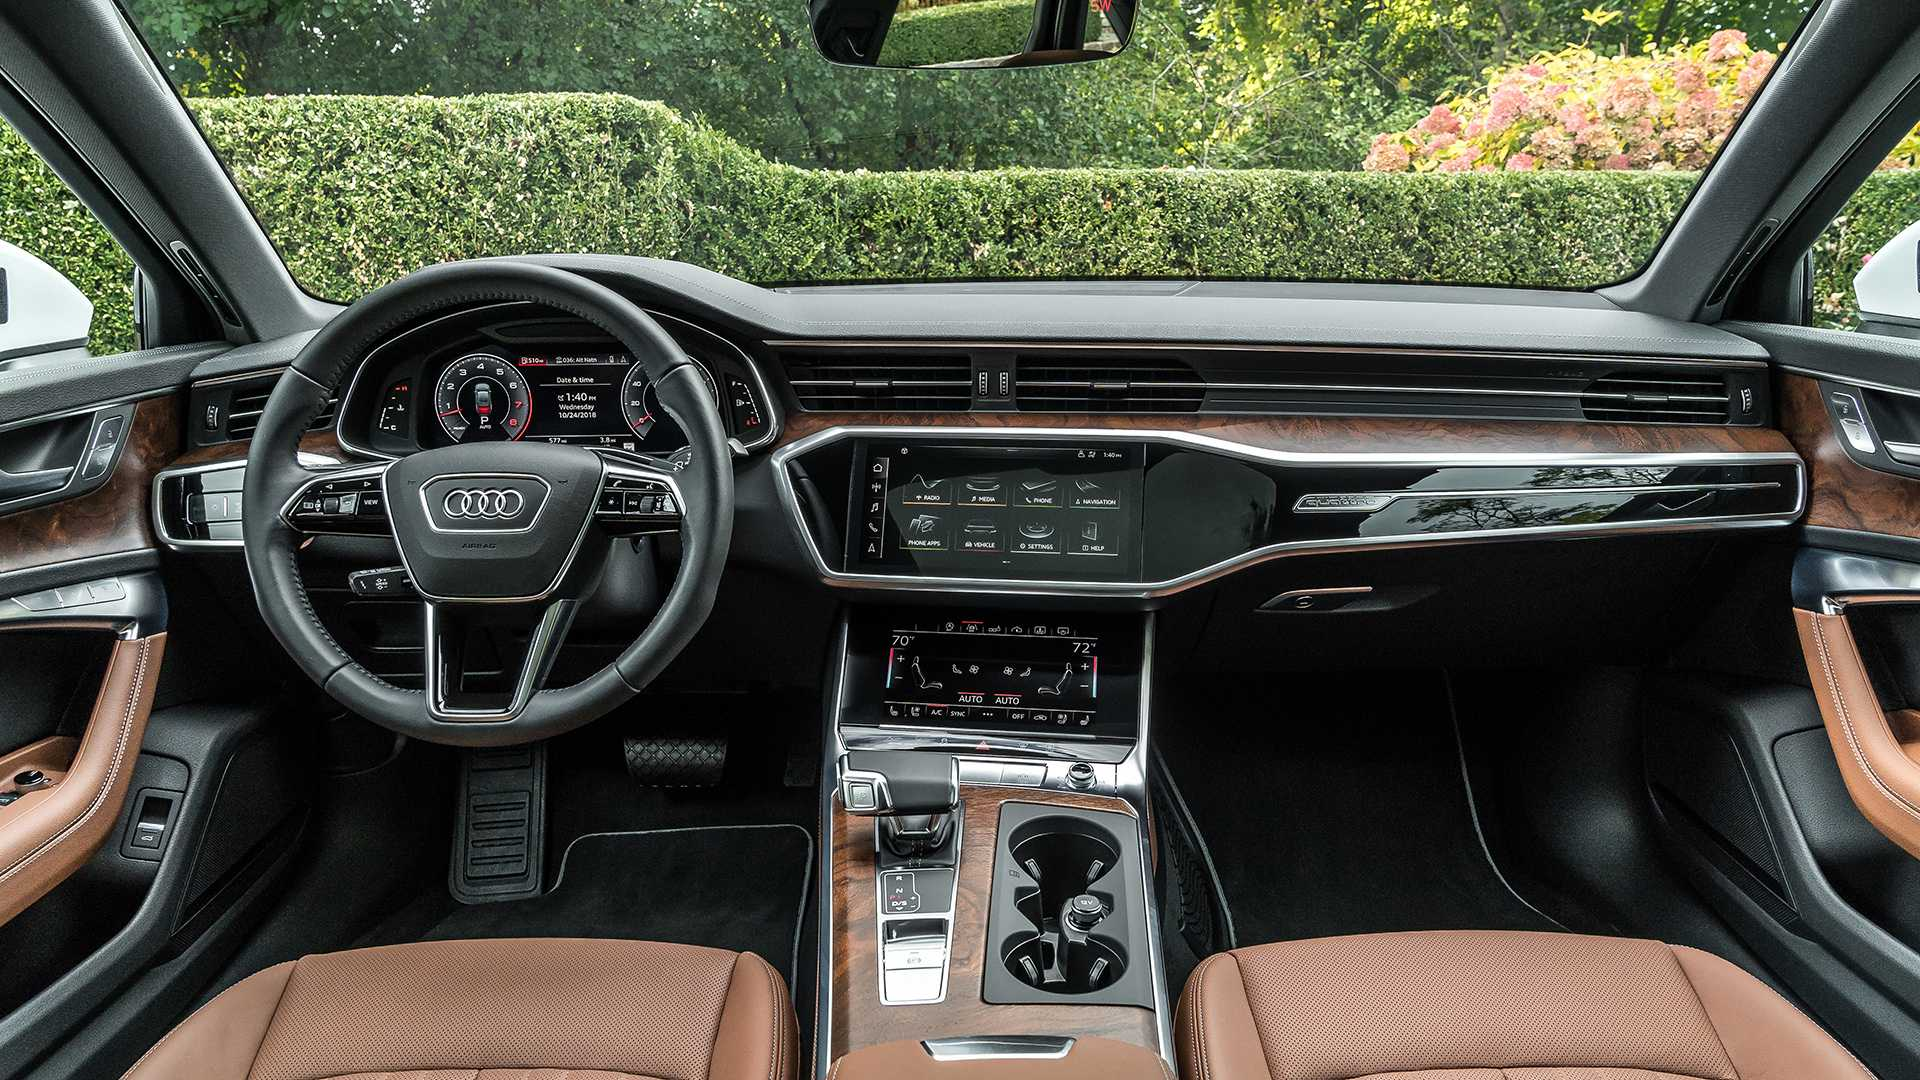 2019 Audi A6 Test Drive To The Unknown Was Full Of Surprises